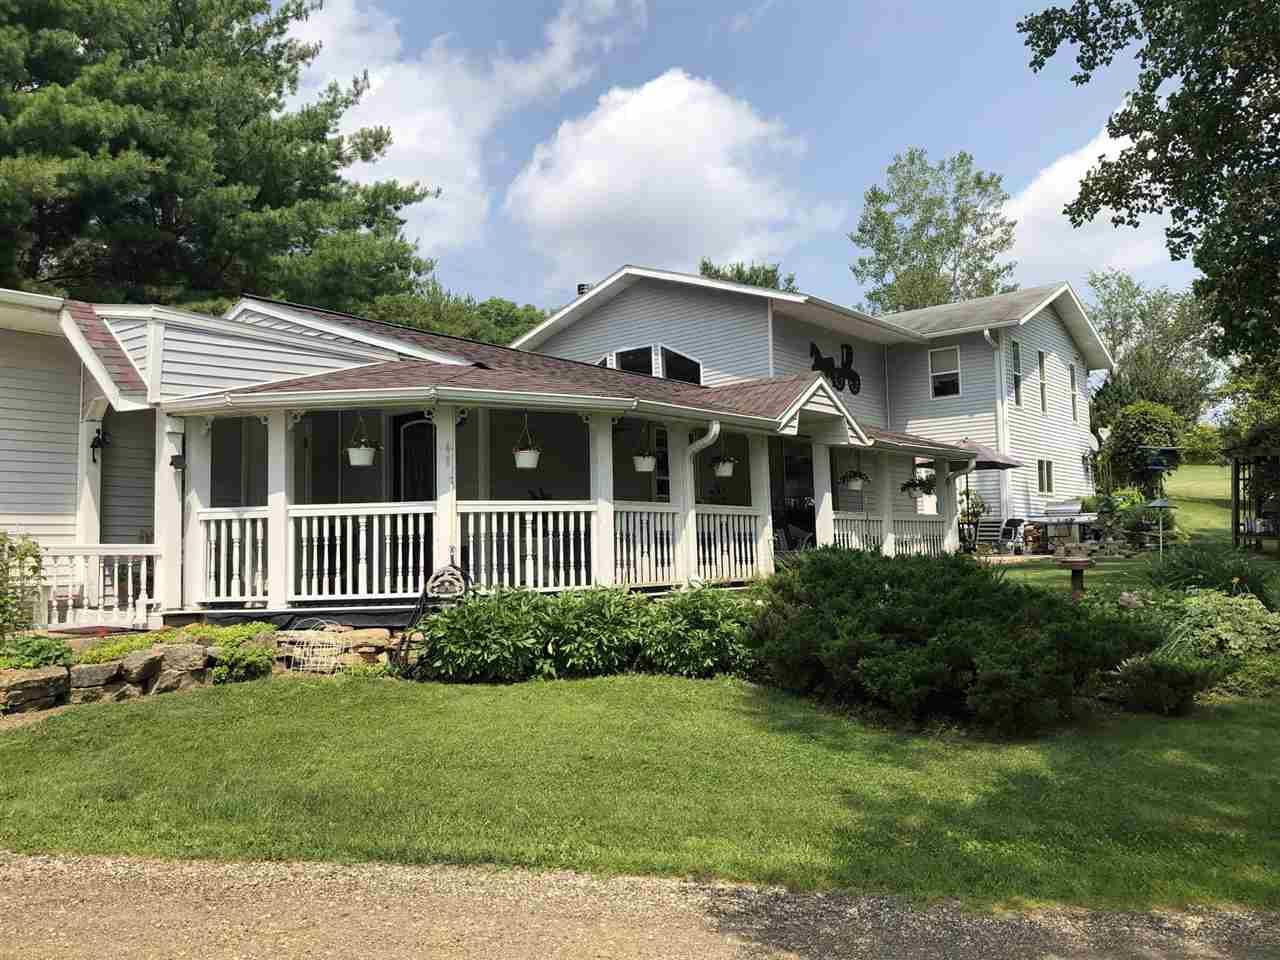 43922 County Road S, Gays Mills, WI 54631 - #: 1917594